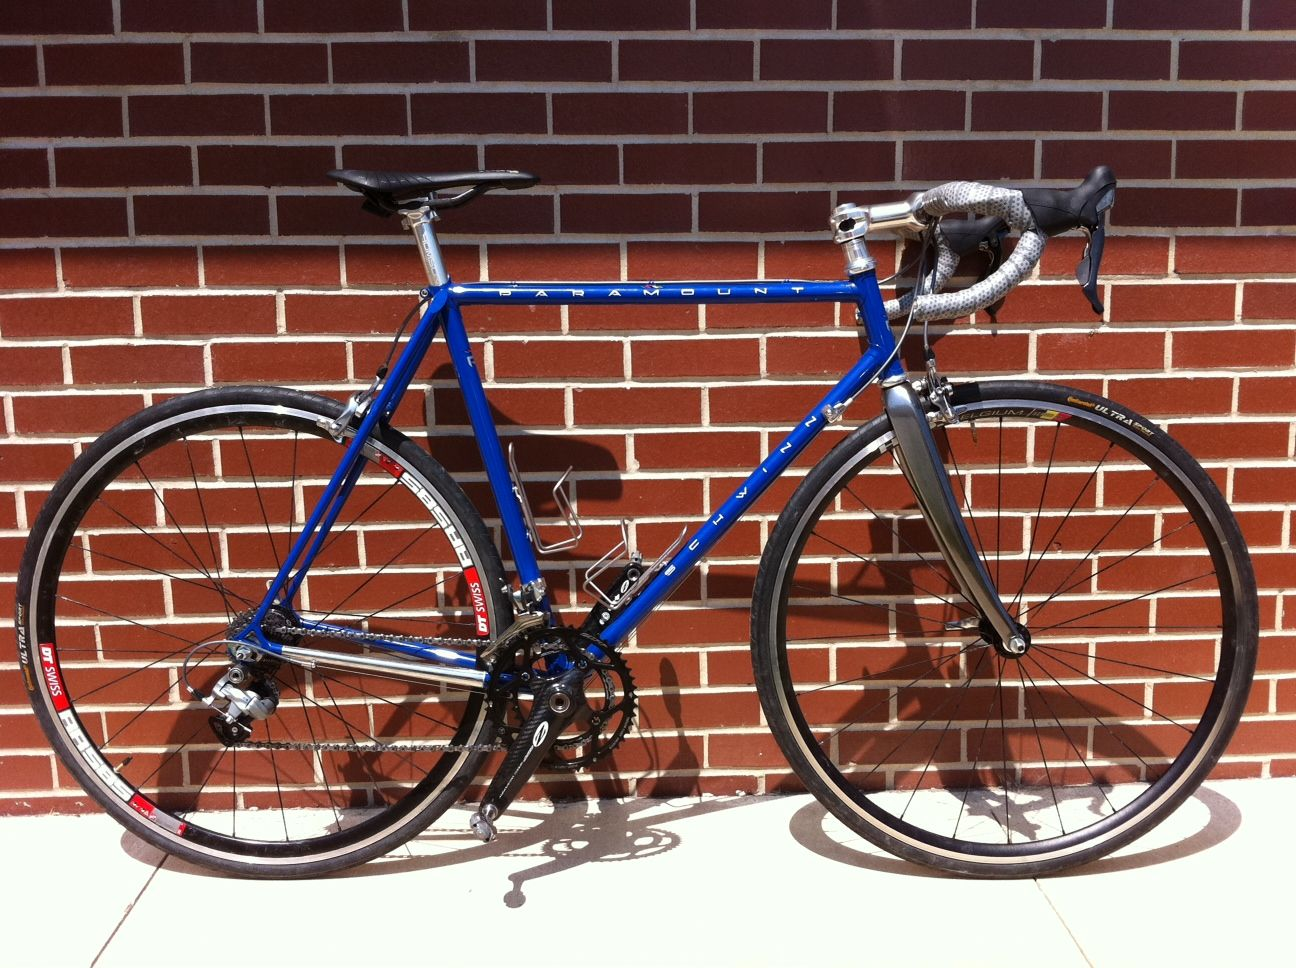 Schwinn Paramount (Waterford frame) In my opinion, some of